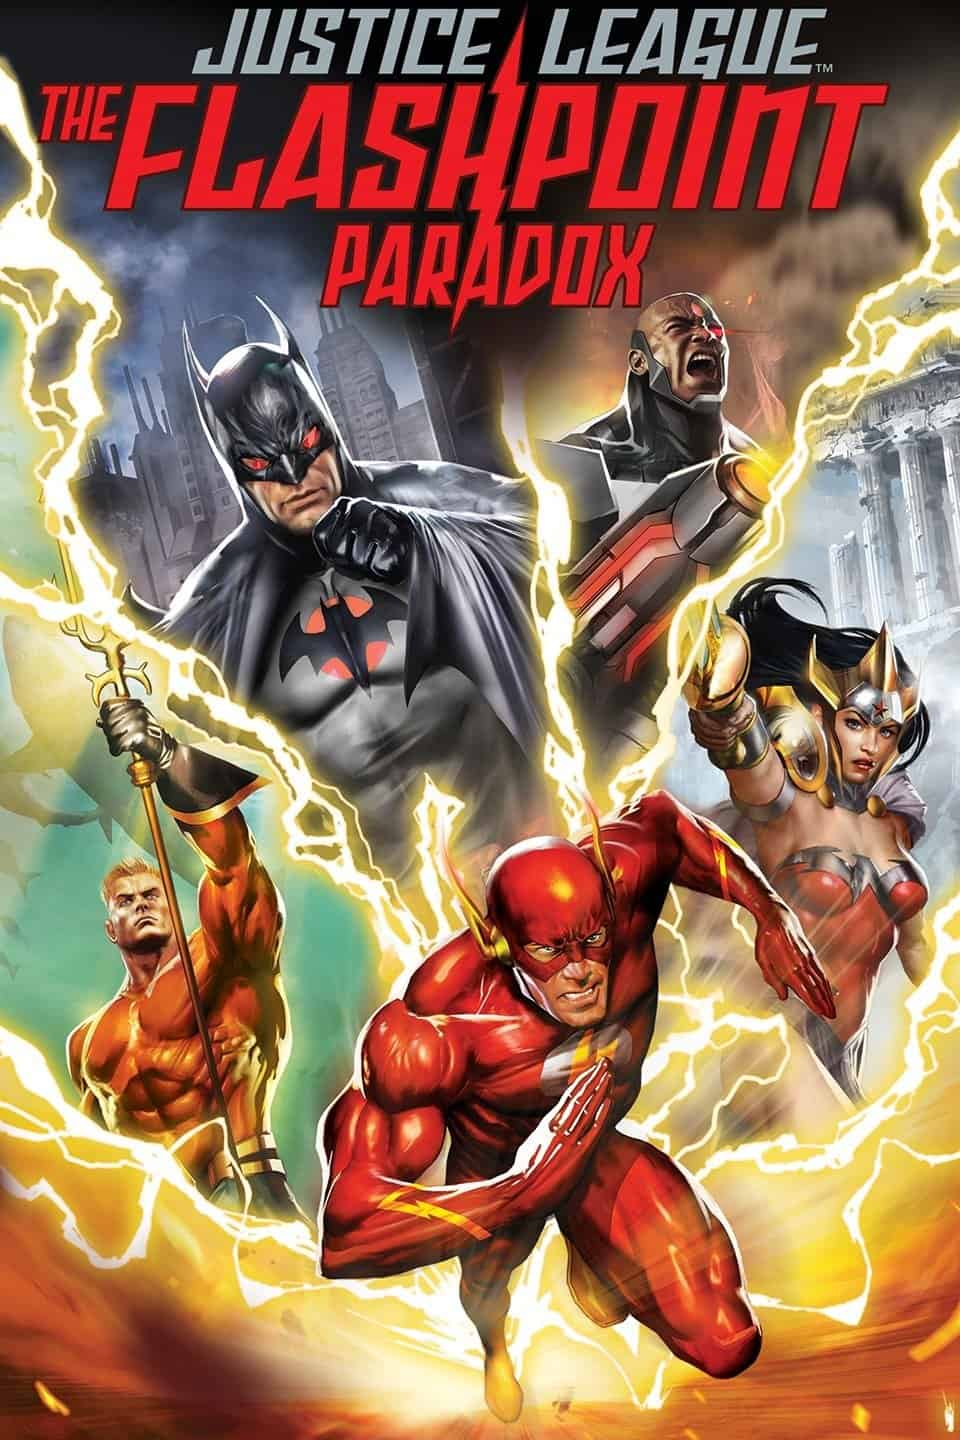 Justice League: The Flashpoint Paradox, 2013